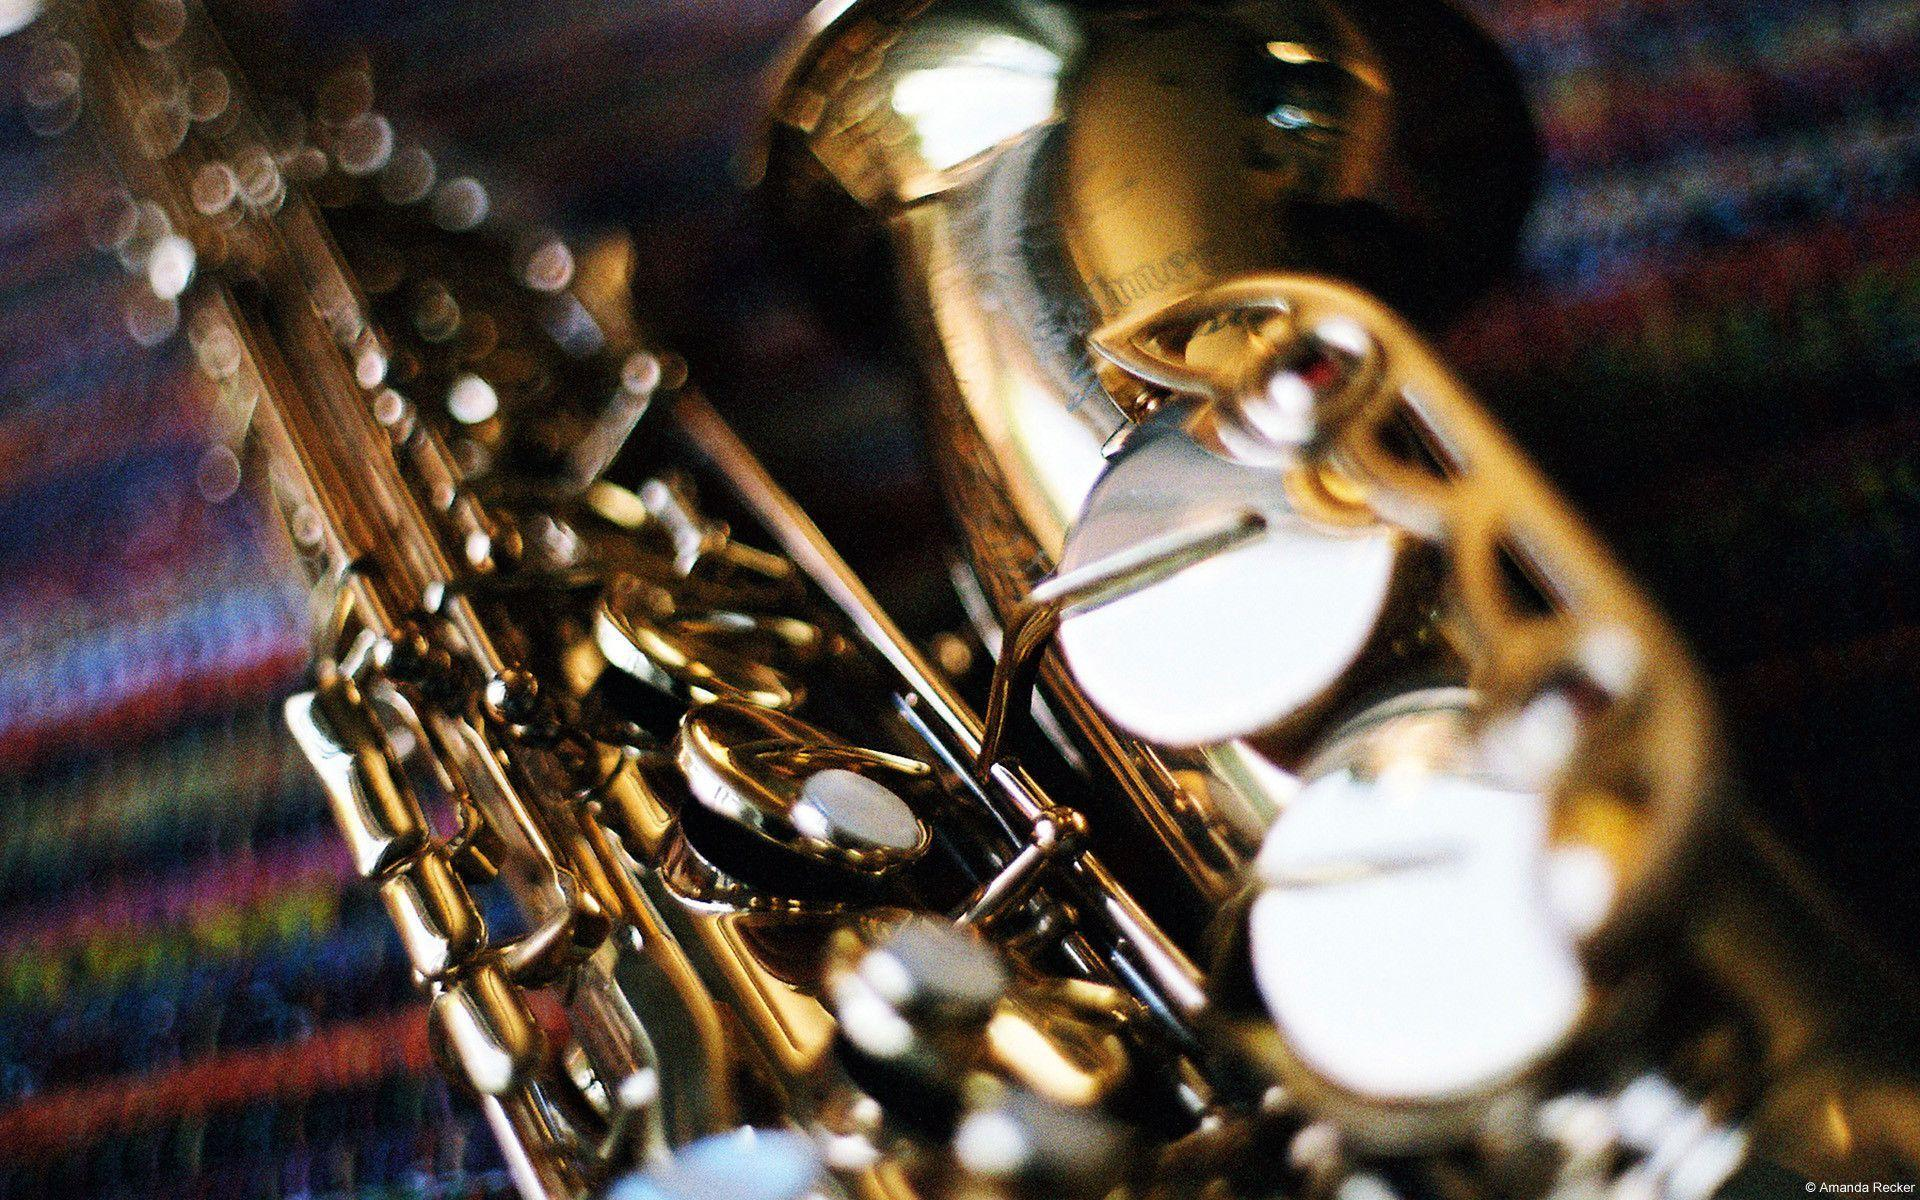 Desktop Backgrounds Microsoft Windows taken from Saxophone ...